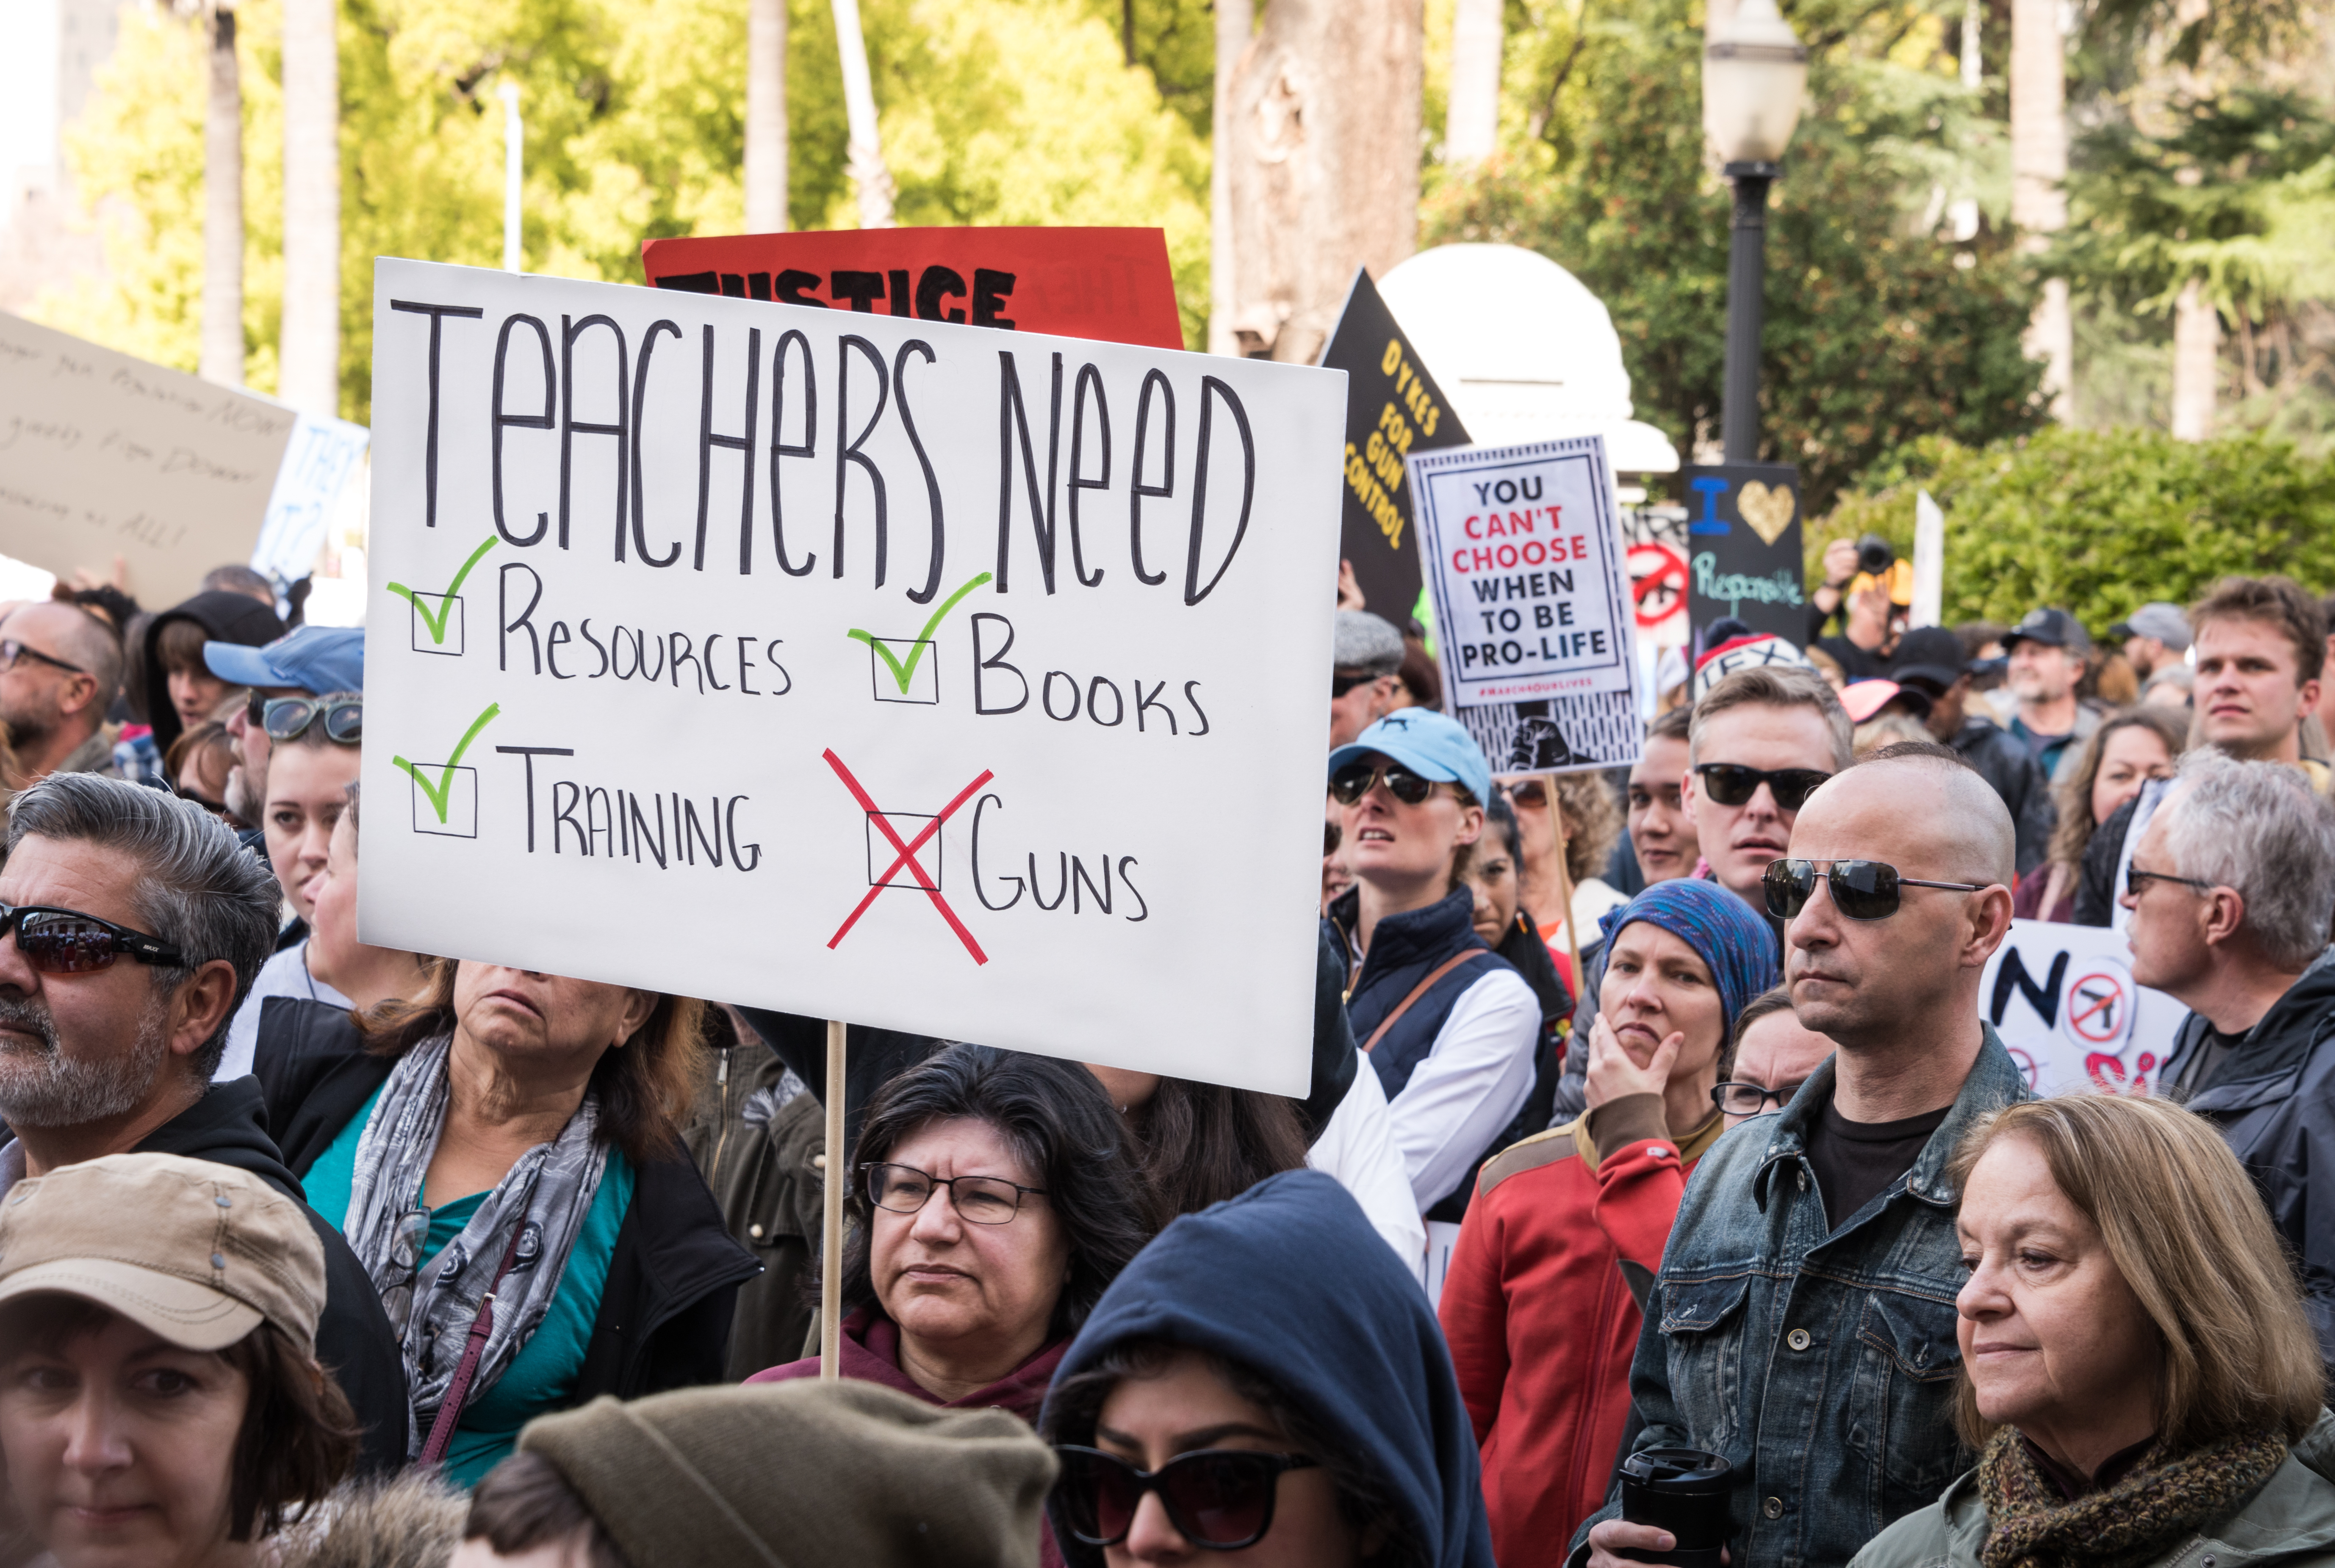 A woman holds a sign advocating for equipping teachers with resources at a March For Our Lives sister rally in Sacramento. Chris Allan / Shutterstock.com.